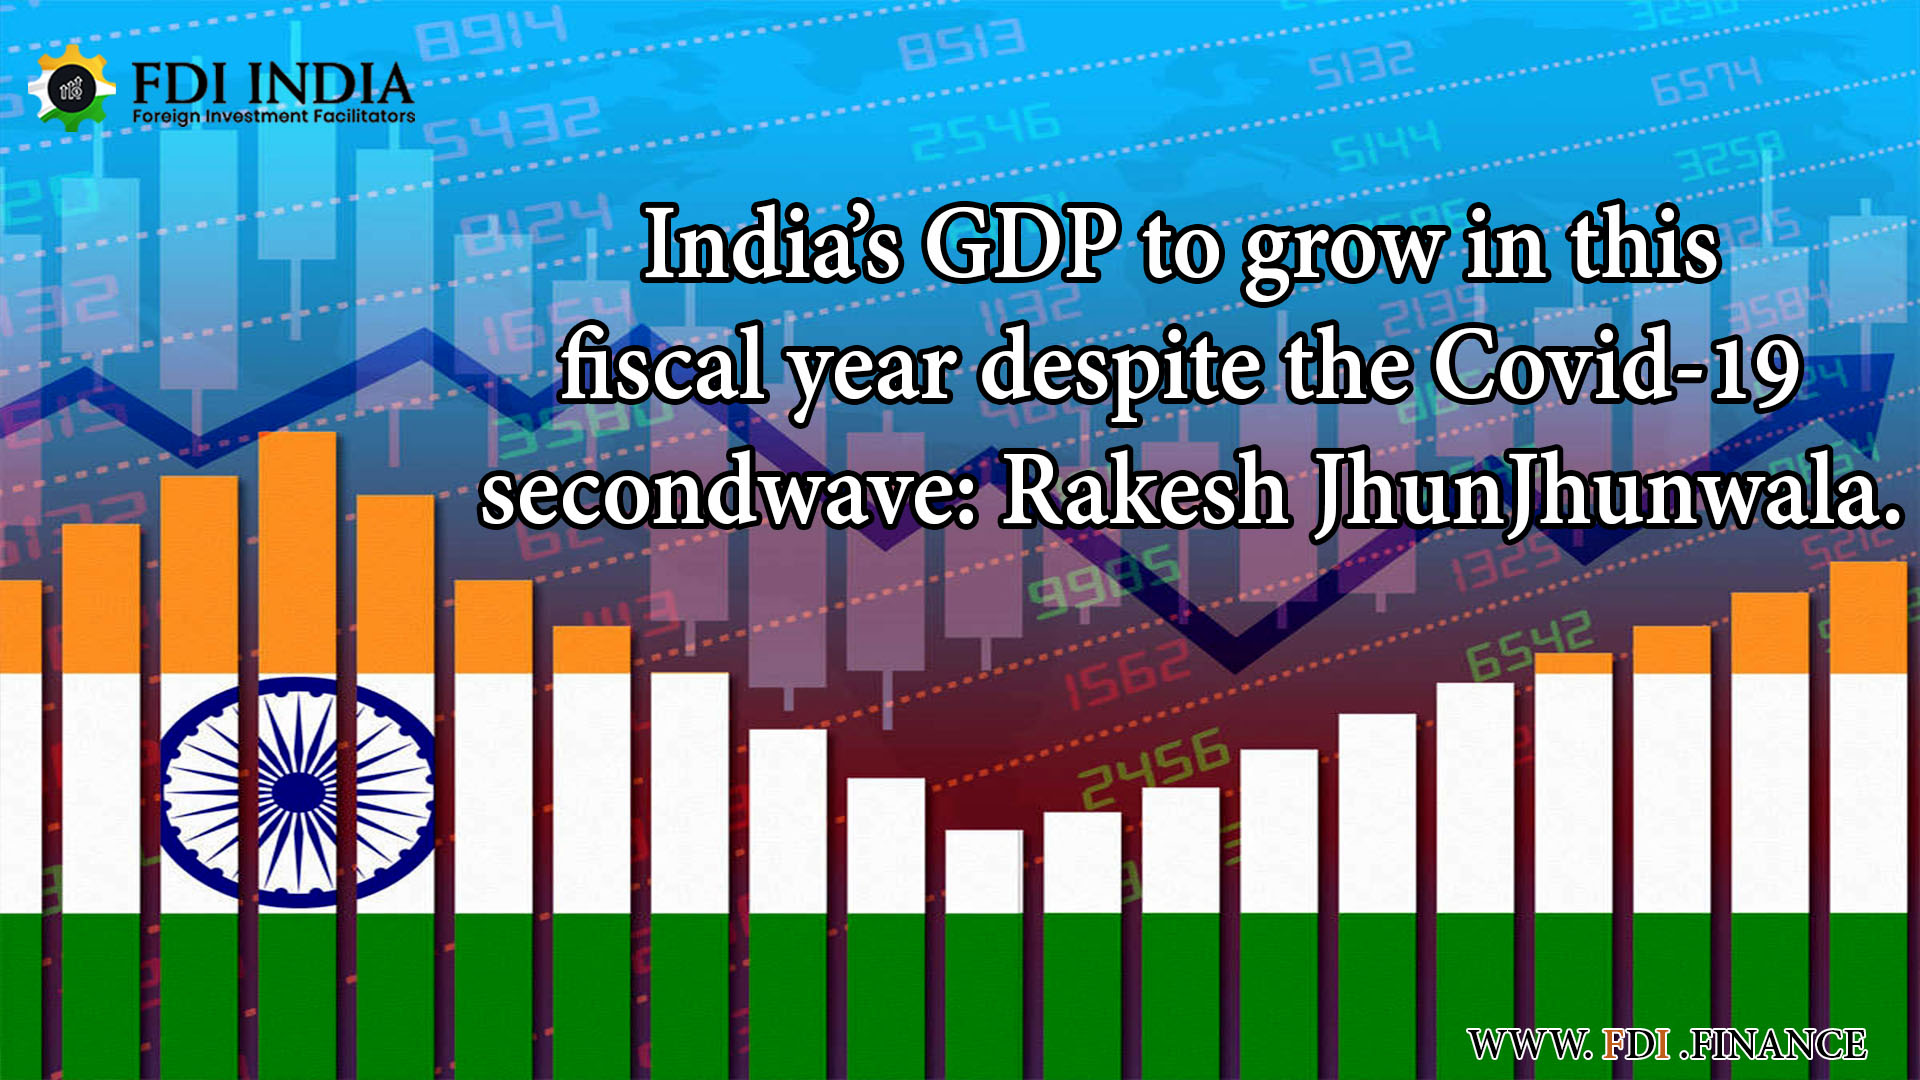 India's GDP To Grow In This Fiscal Year Despite The Covid-19 Second Wave: Rakesh Jhunjhunwala